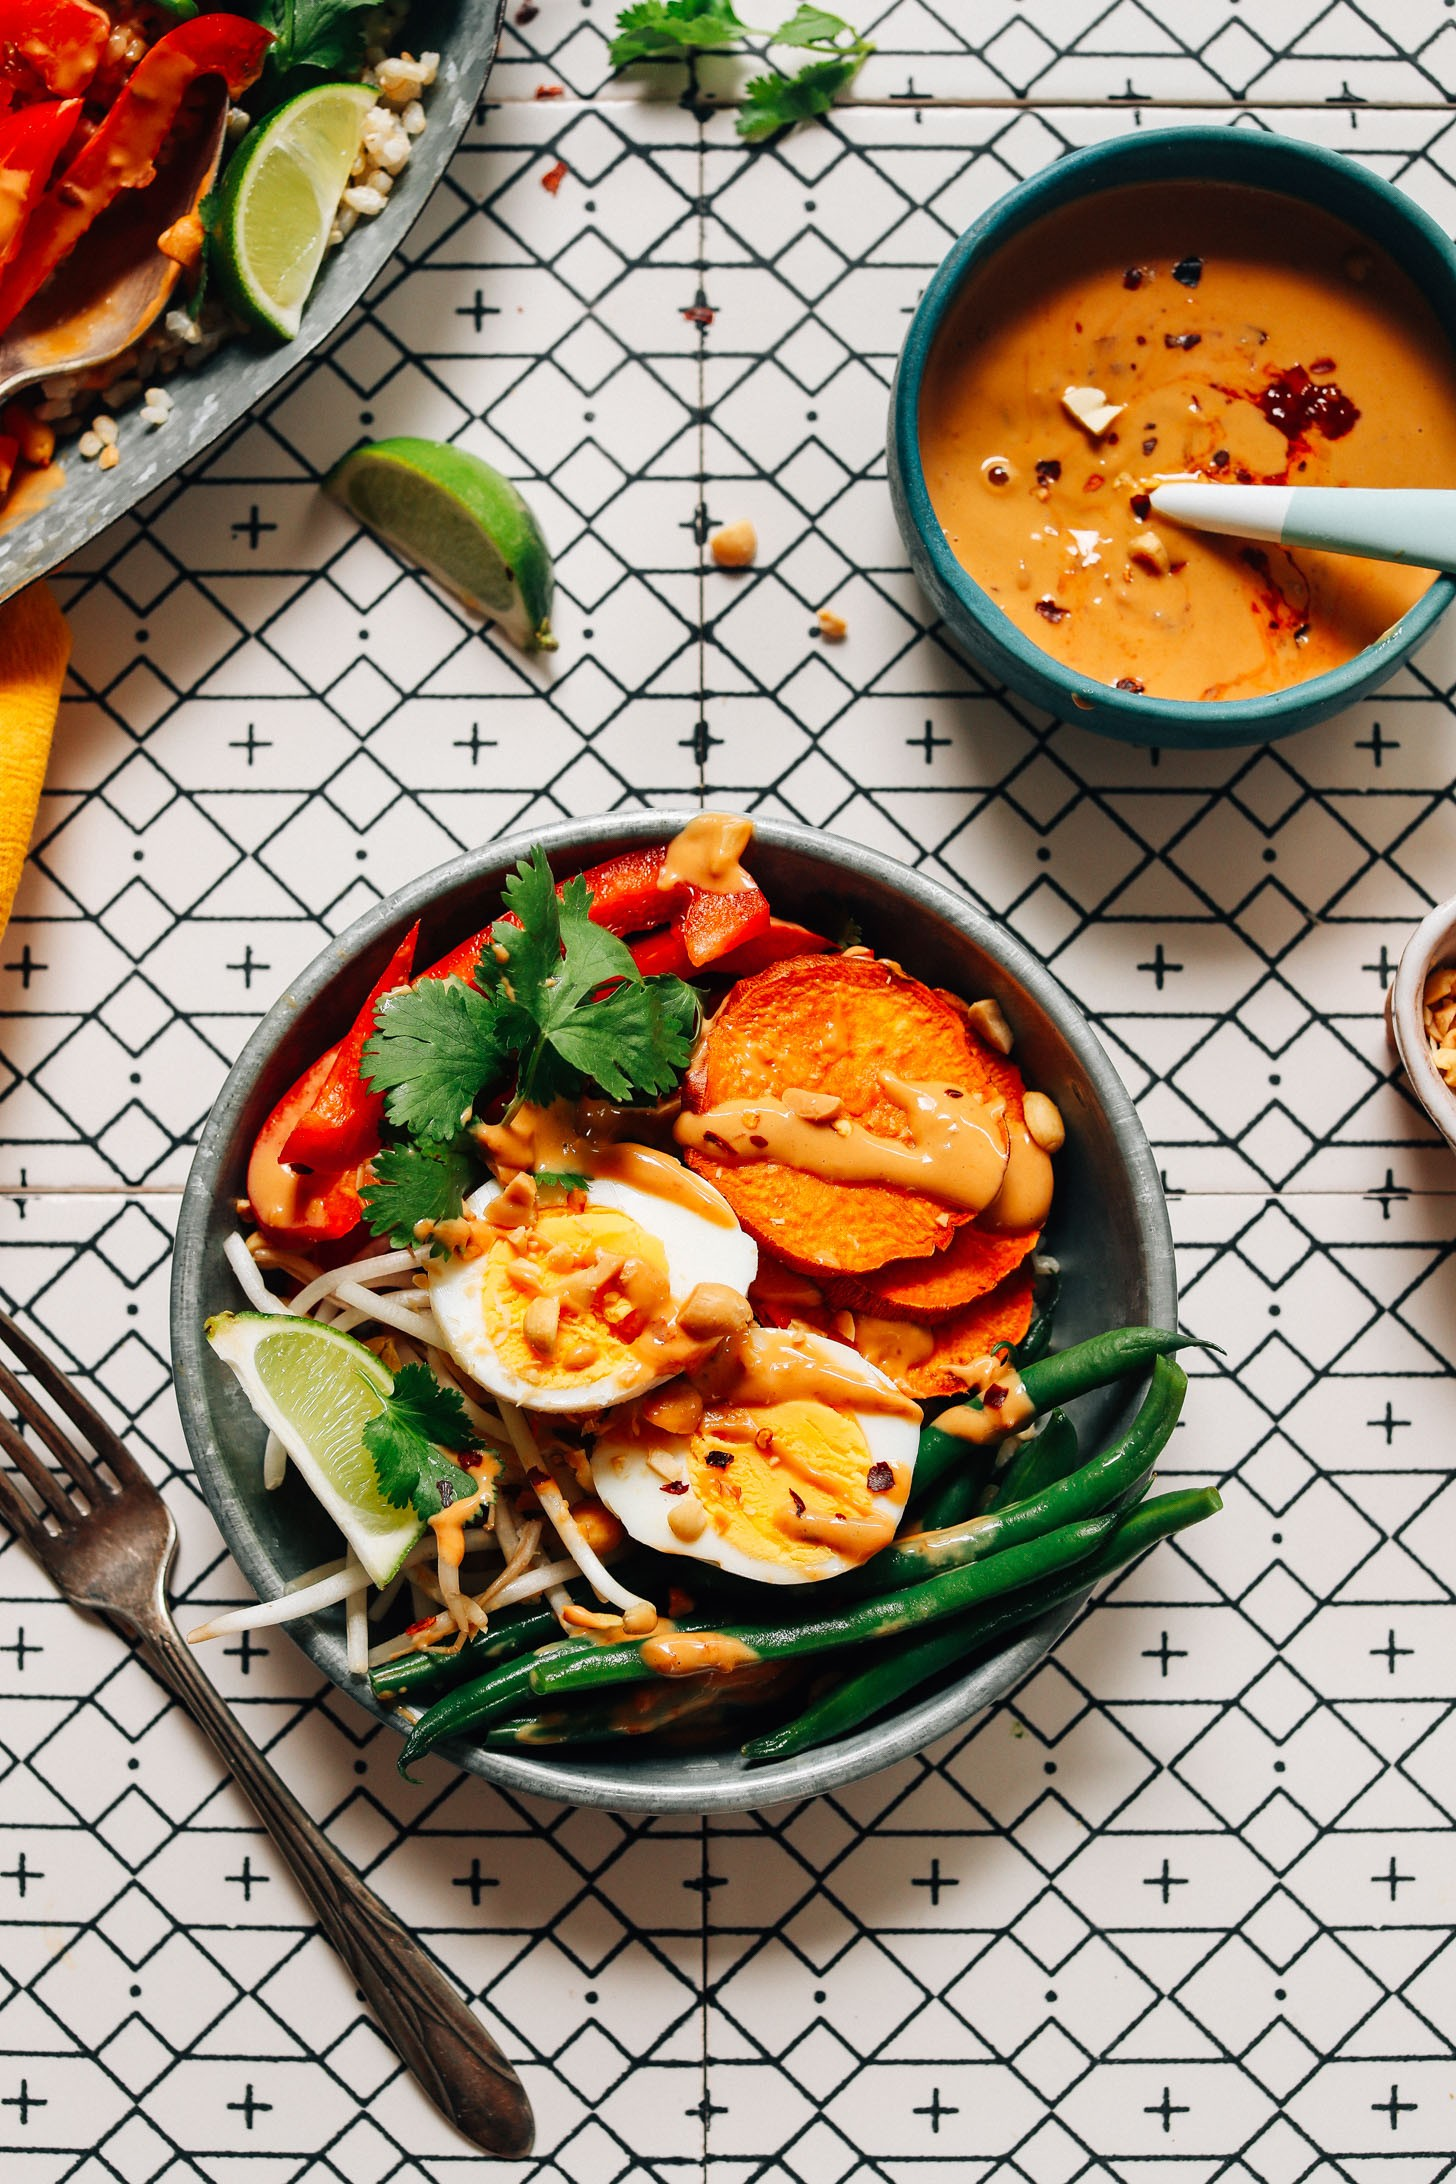 FRESH and Delicious Gado Gado with Roasted and Fresh Veggies and Spicy Peanut Sauce Simple ingre nts ready in 30 minutes dairyfree dinner lunch gadogado glutenfree minimalistbaker recipe 10